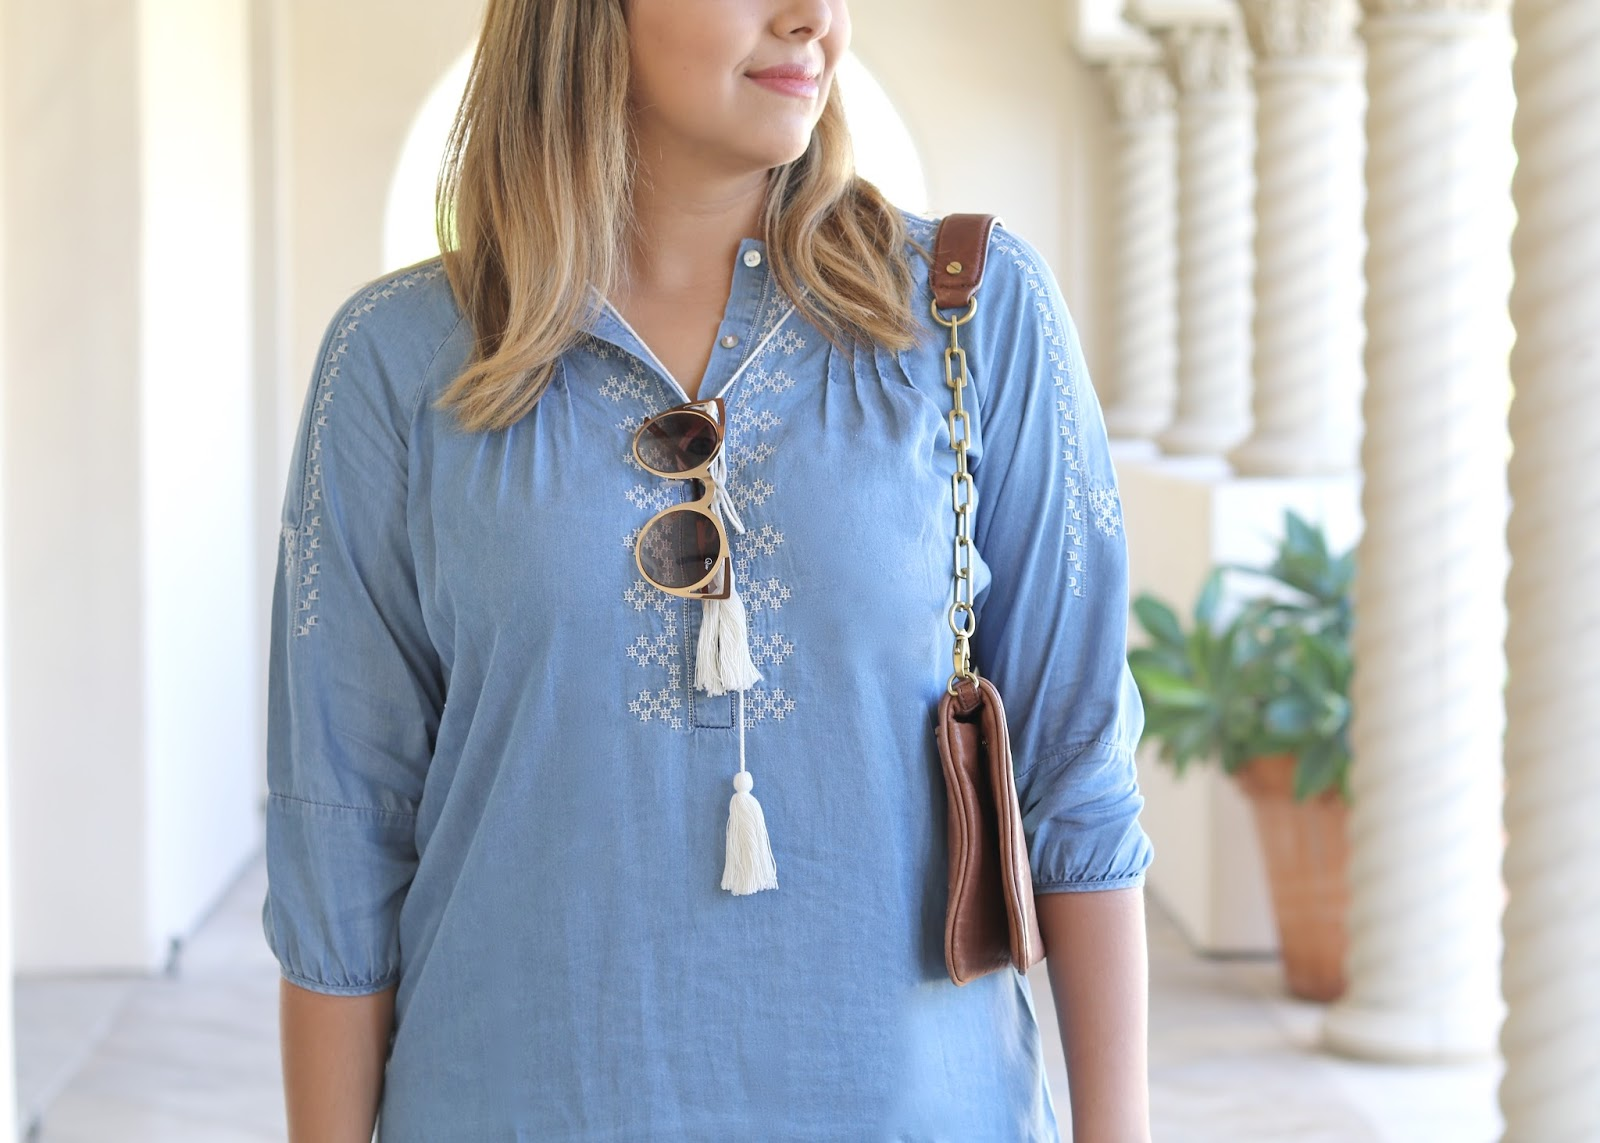 Quay Sunglasses, quay invader sunglasses, what to wear with a denim dress, embroidered dress